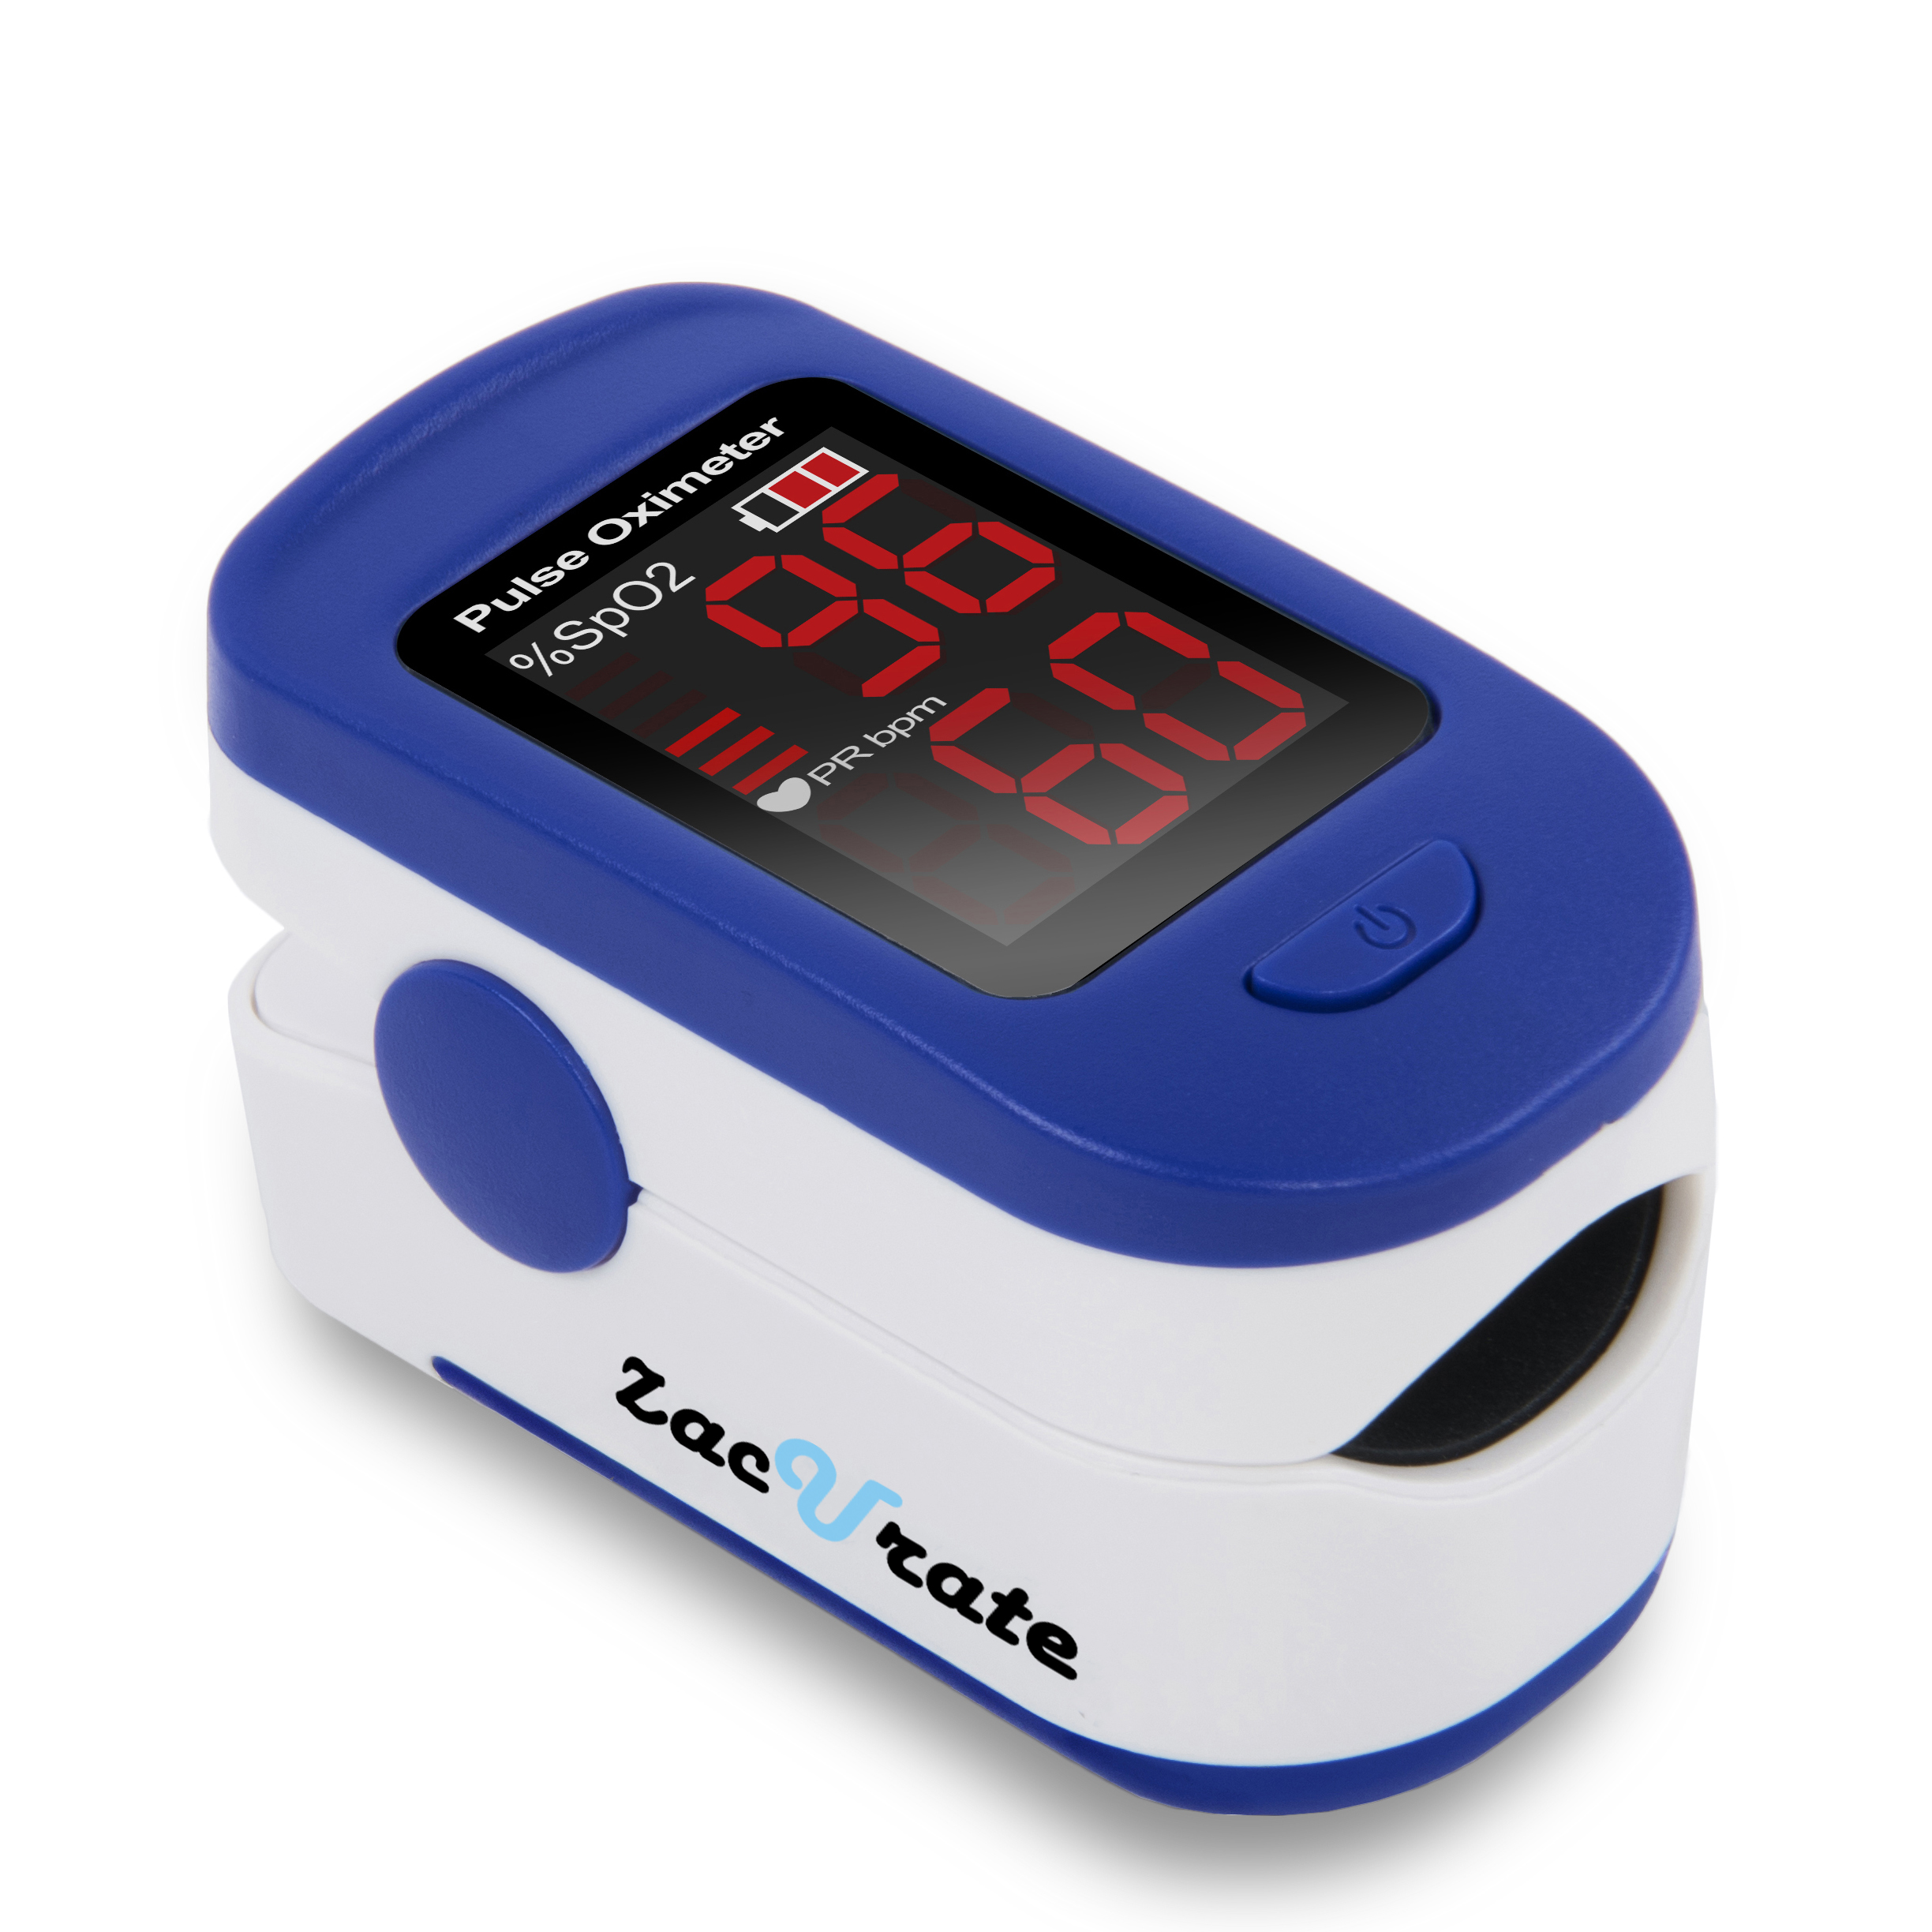 Zacurate 500BL Fingertip Pulse Oximeter Blood Oxygen Saturation Monitor with batteries and lanyard included (Chromatic Blue)